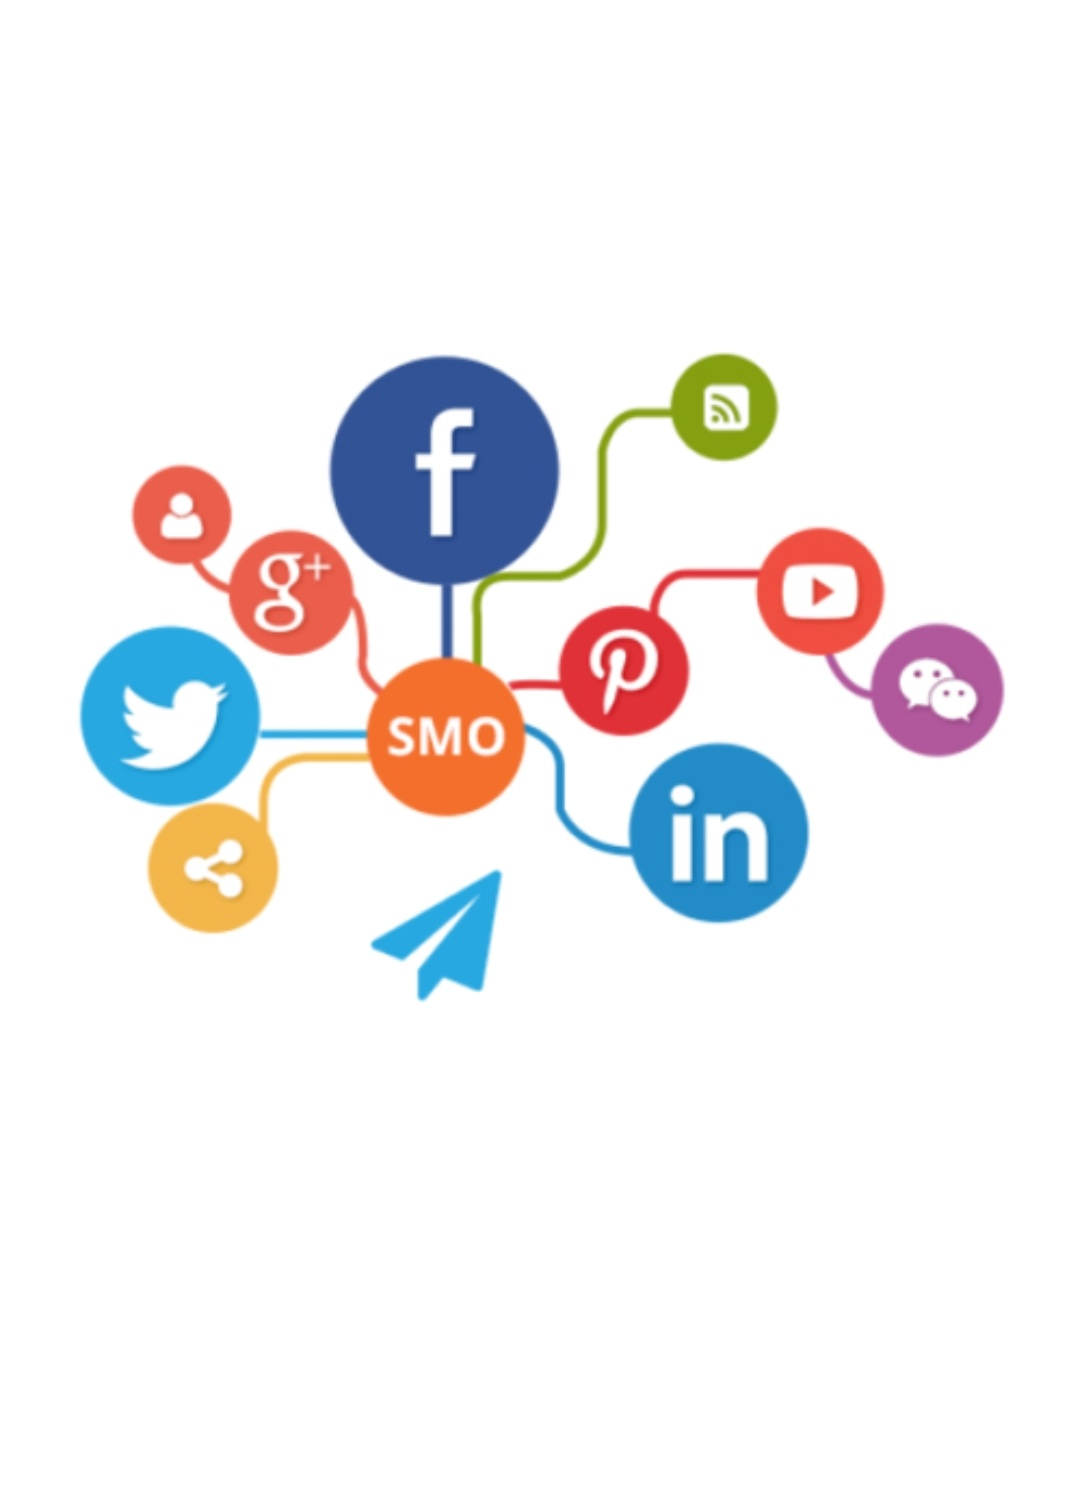 An Easy Way to Learn Social Media Optimization